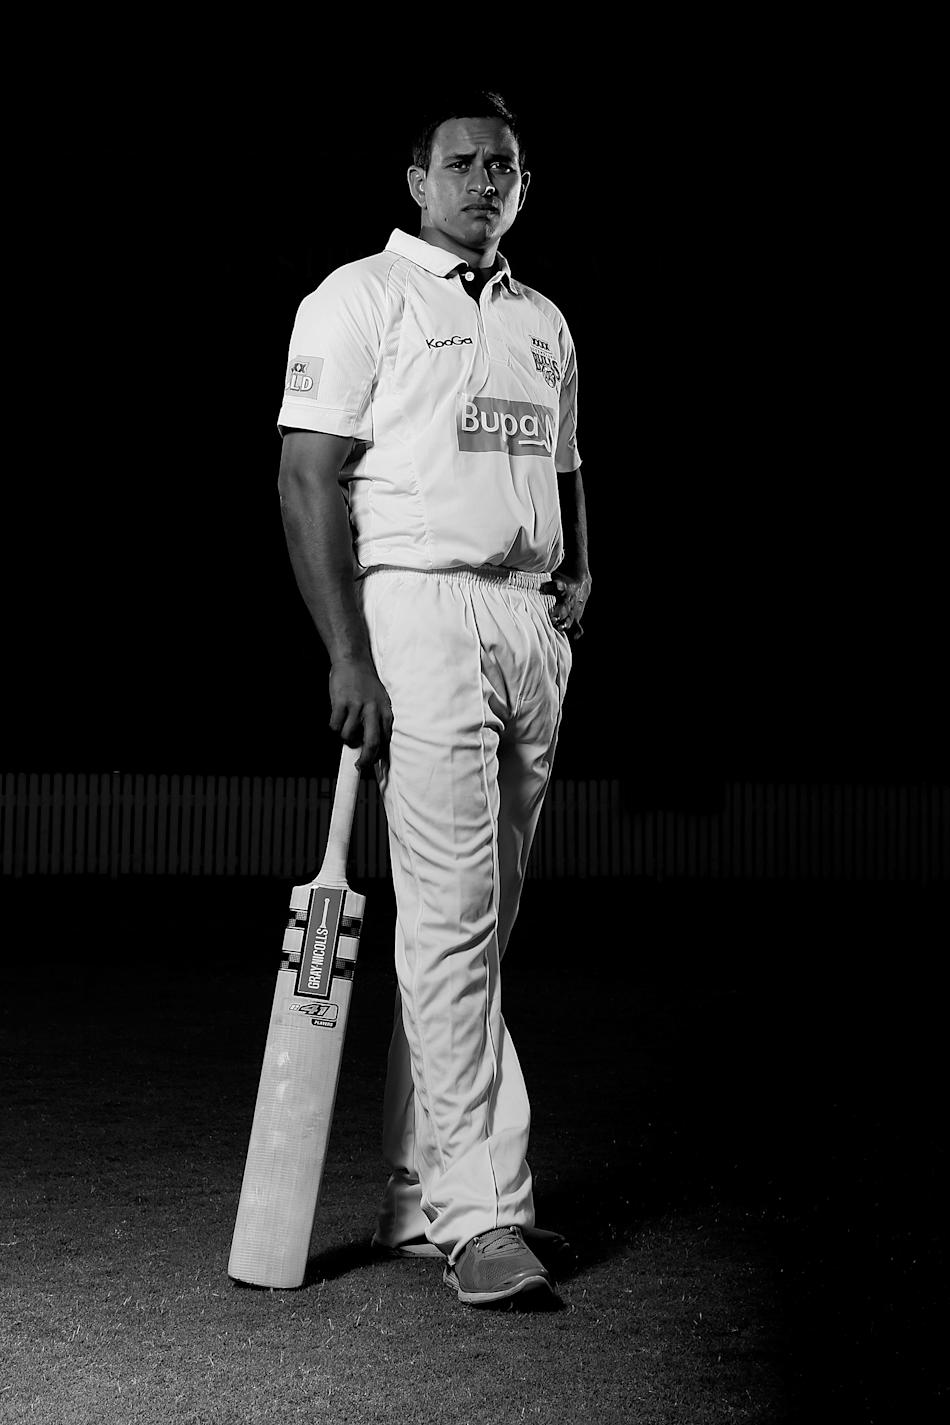 Usman Khawaja Portrait Session